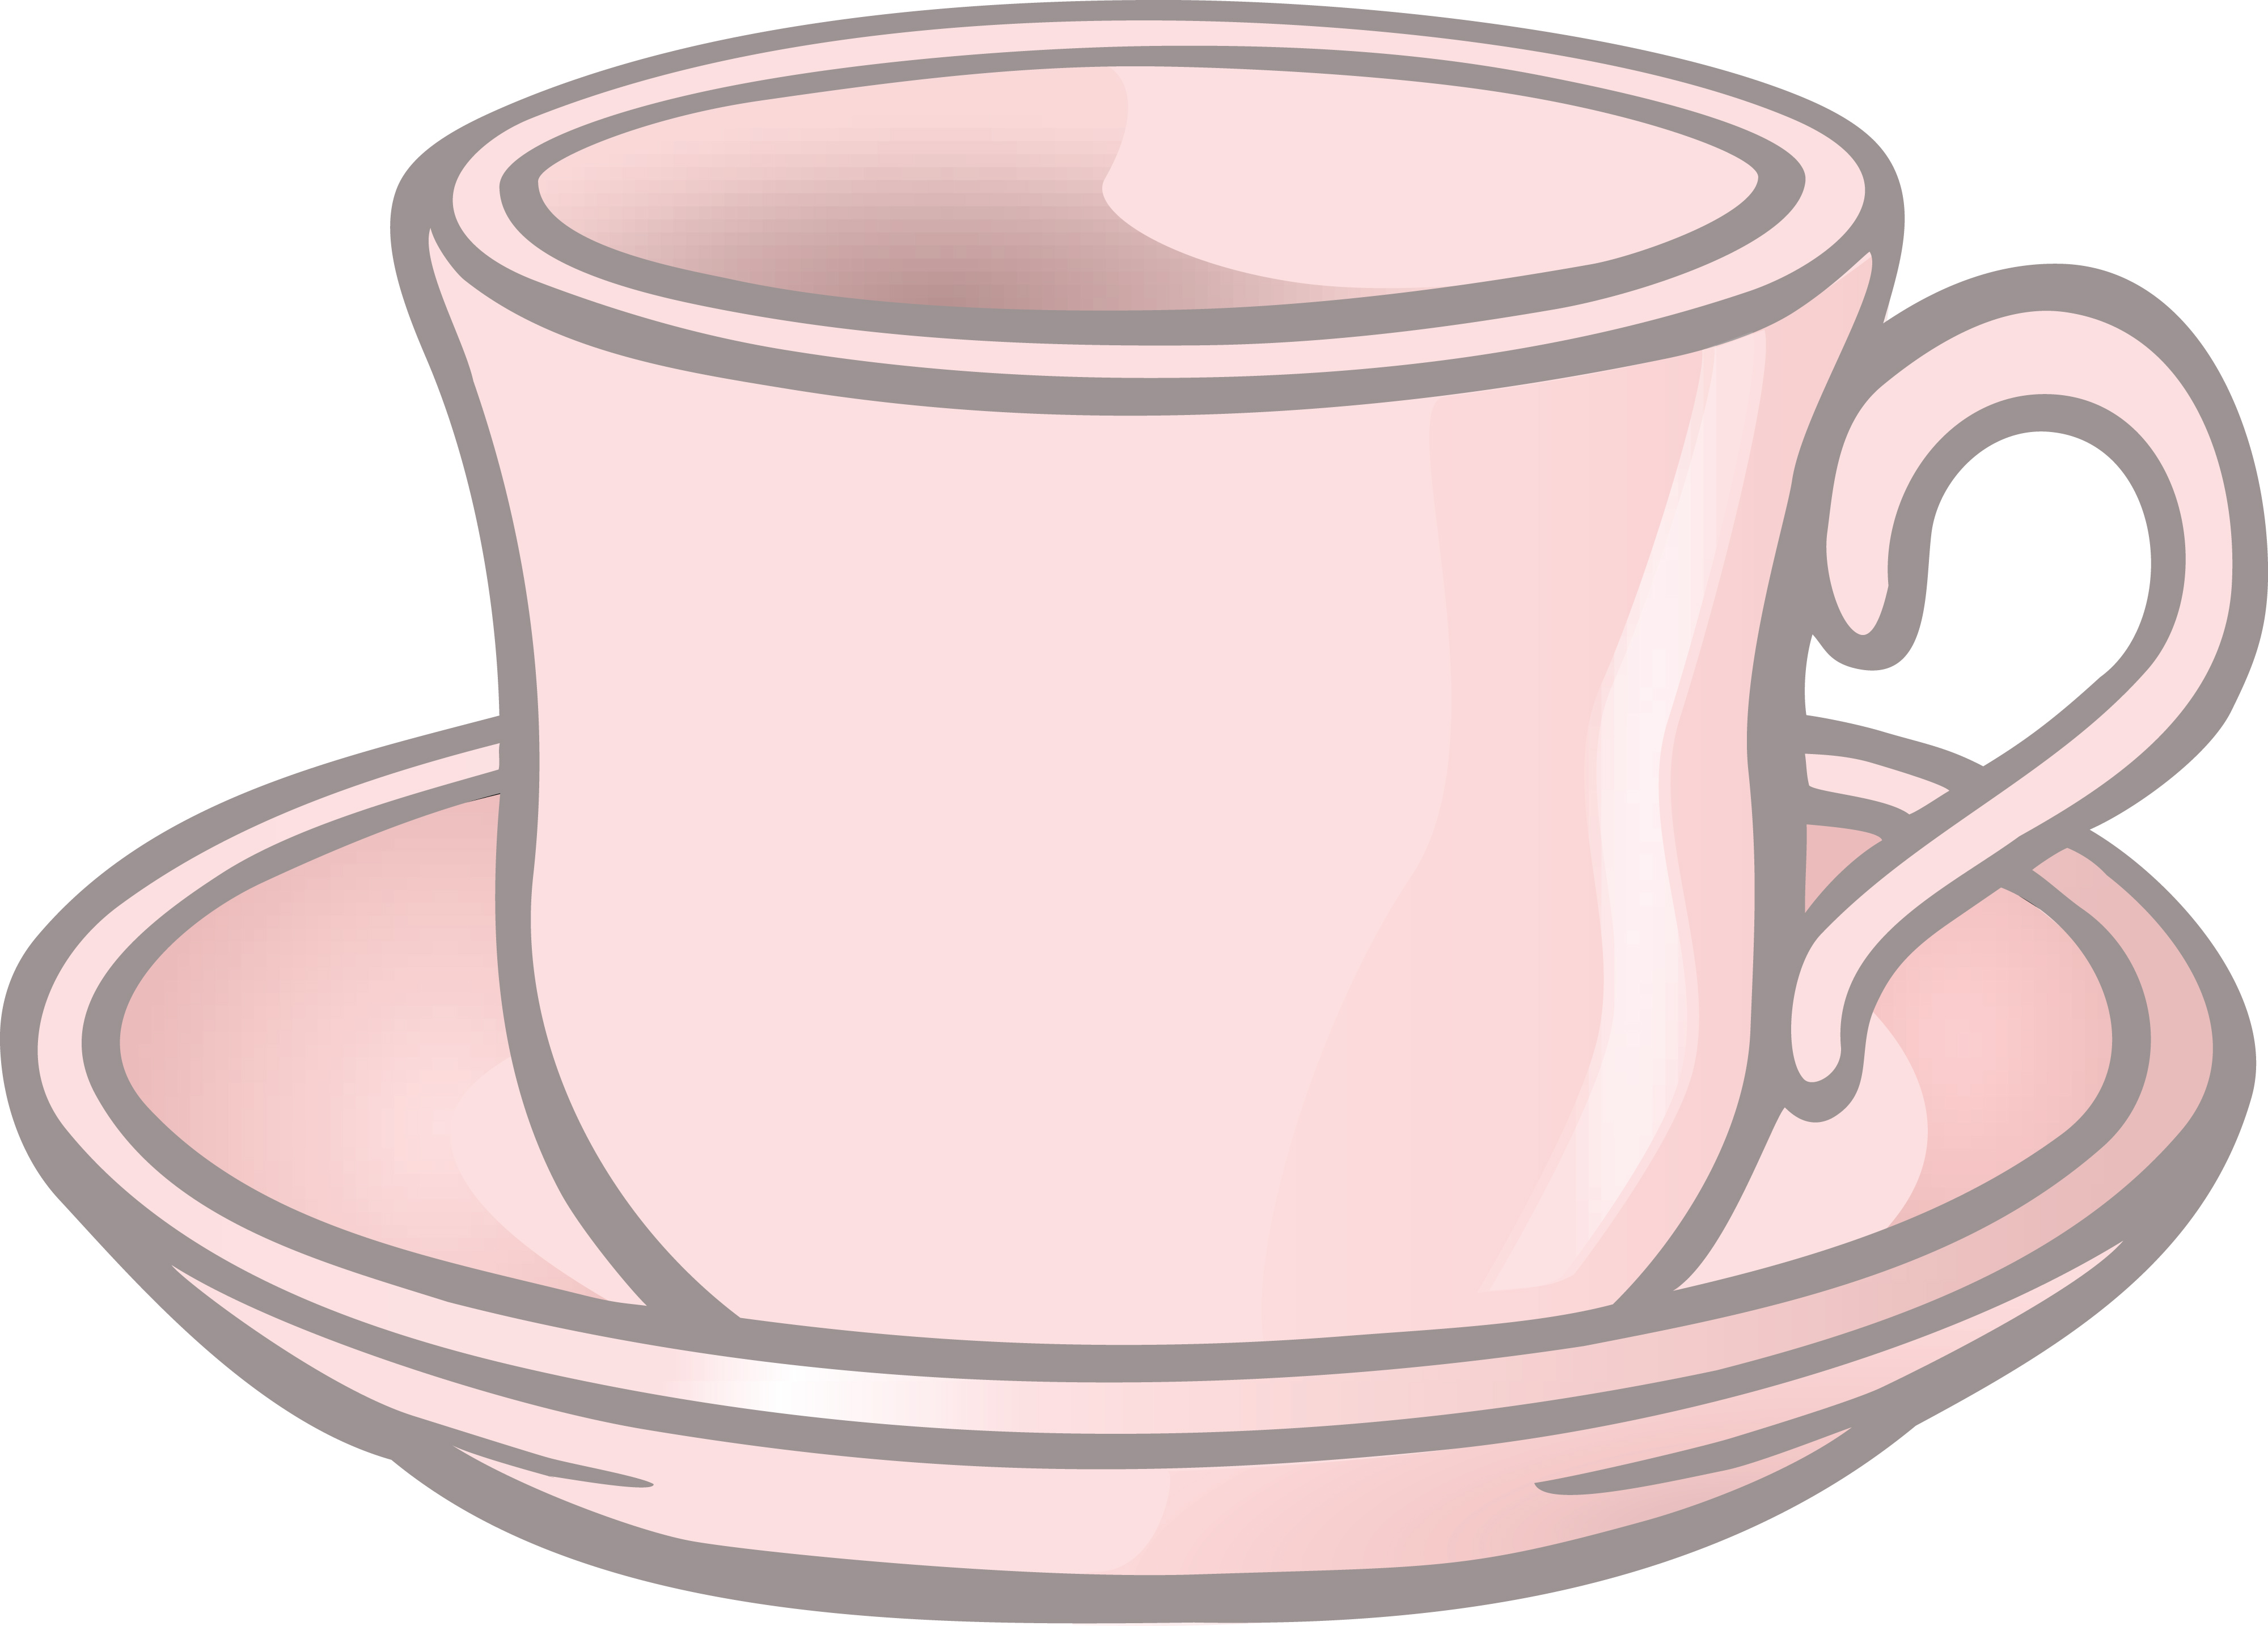 Free Clipart Of A cup of coffee and saucer » Clipart Station.